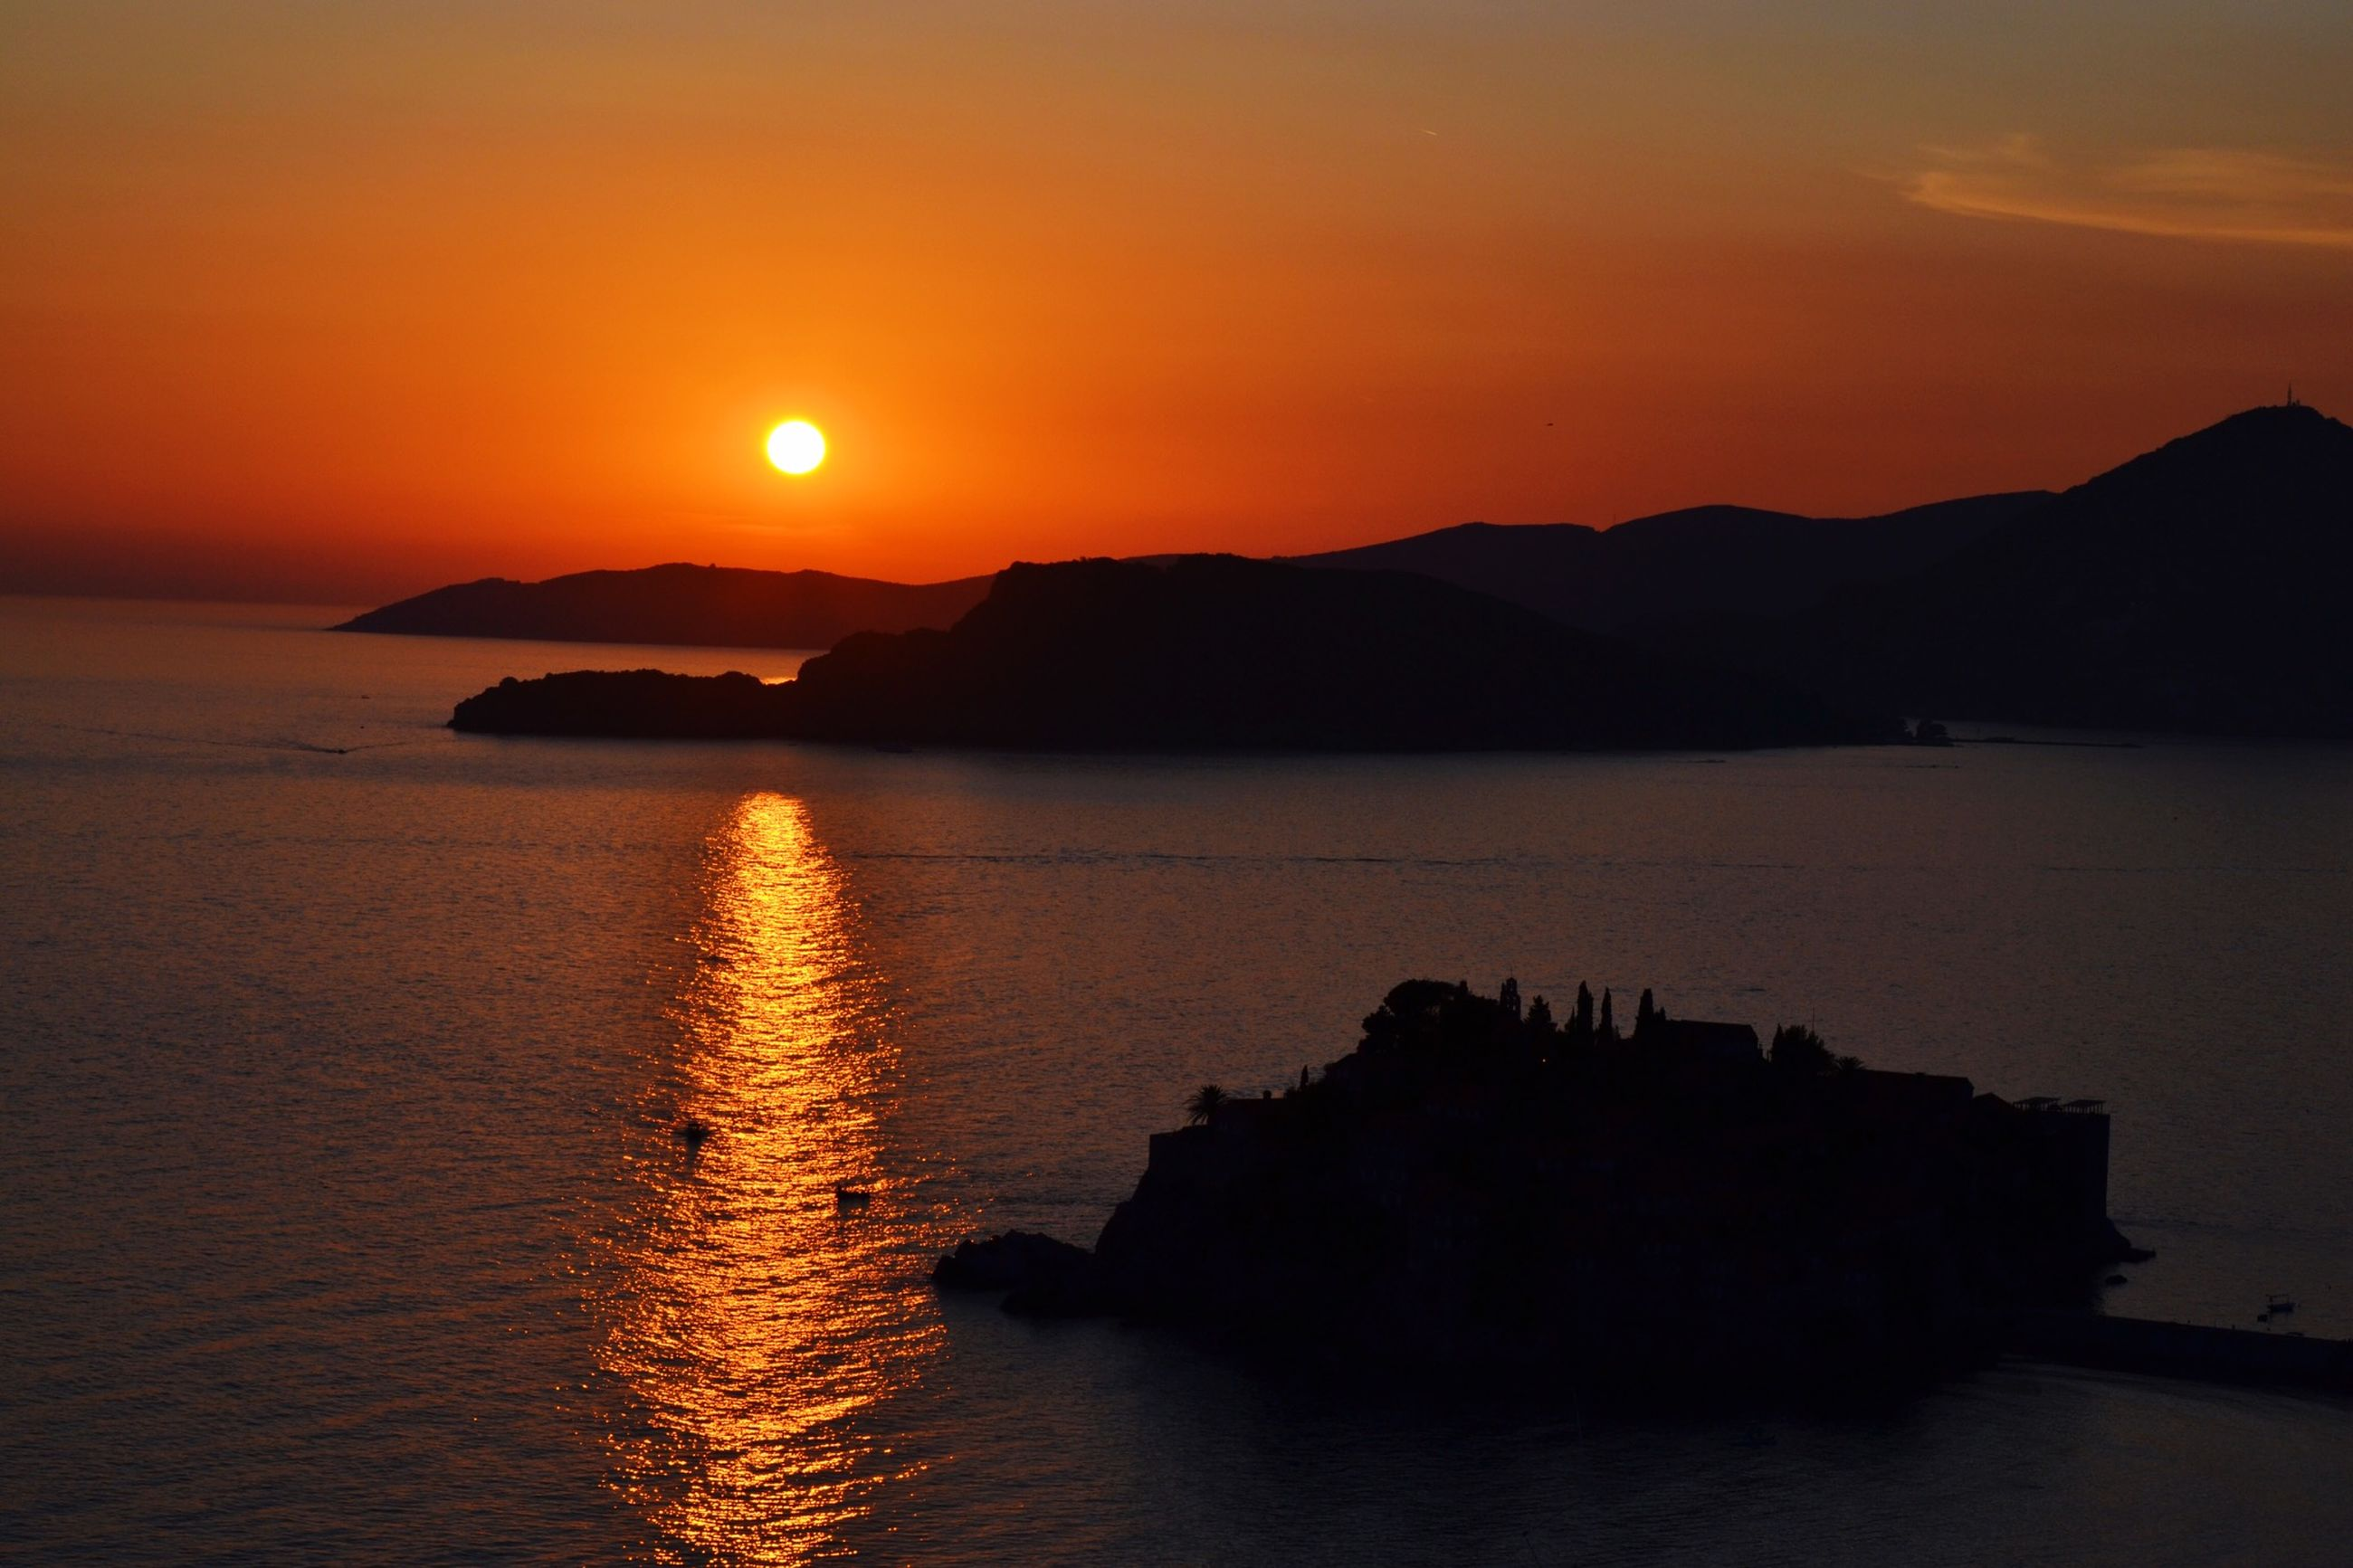 sunset, water, sea, scenics, sun, orange color, tranquil scene, mountain, beauty in nature, tranquility, reflection, silhouette, idyllic, waterfront, sky, nature, mountain range, sunlight, clear sky, rippled